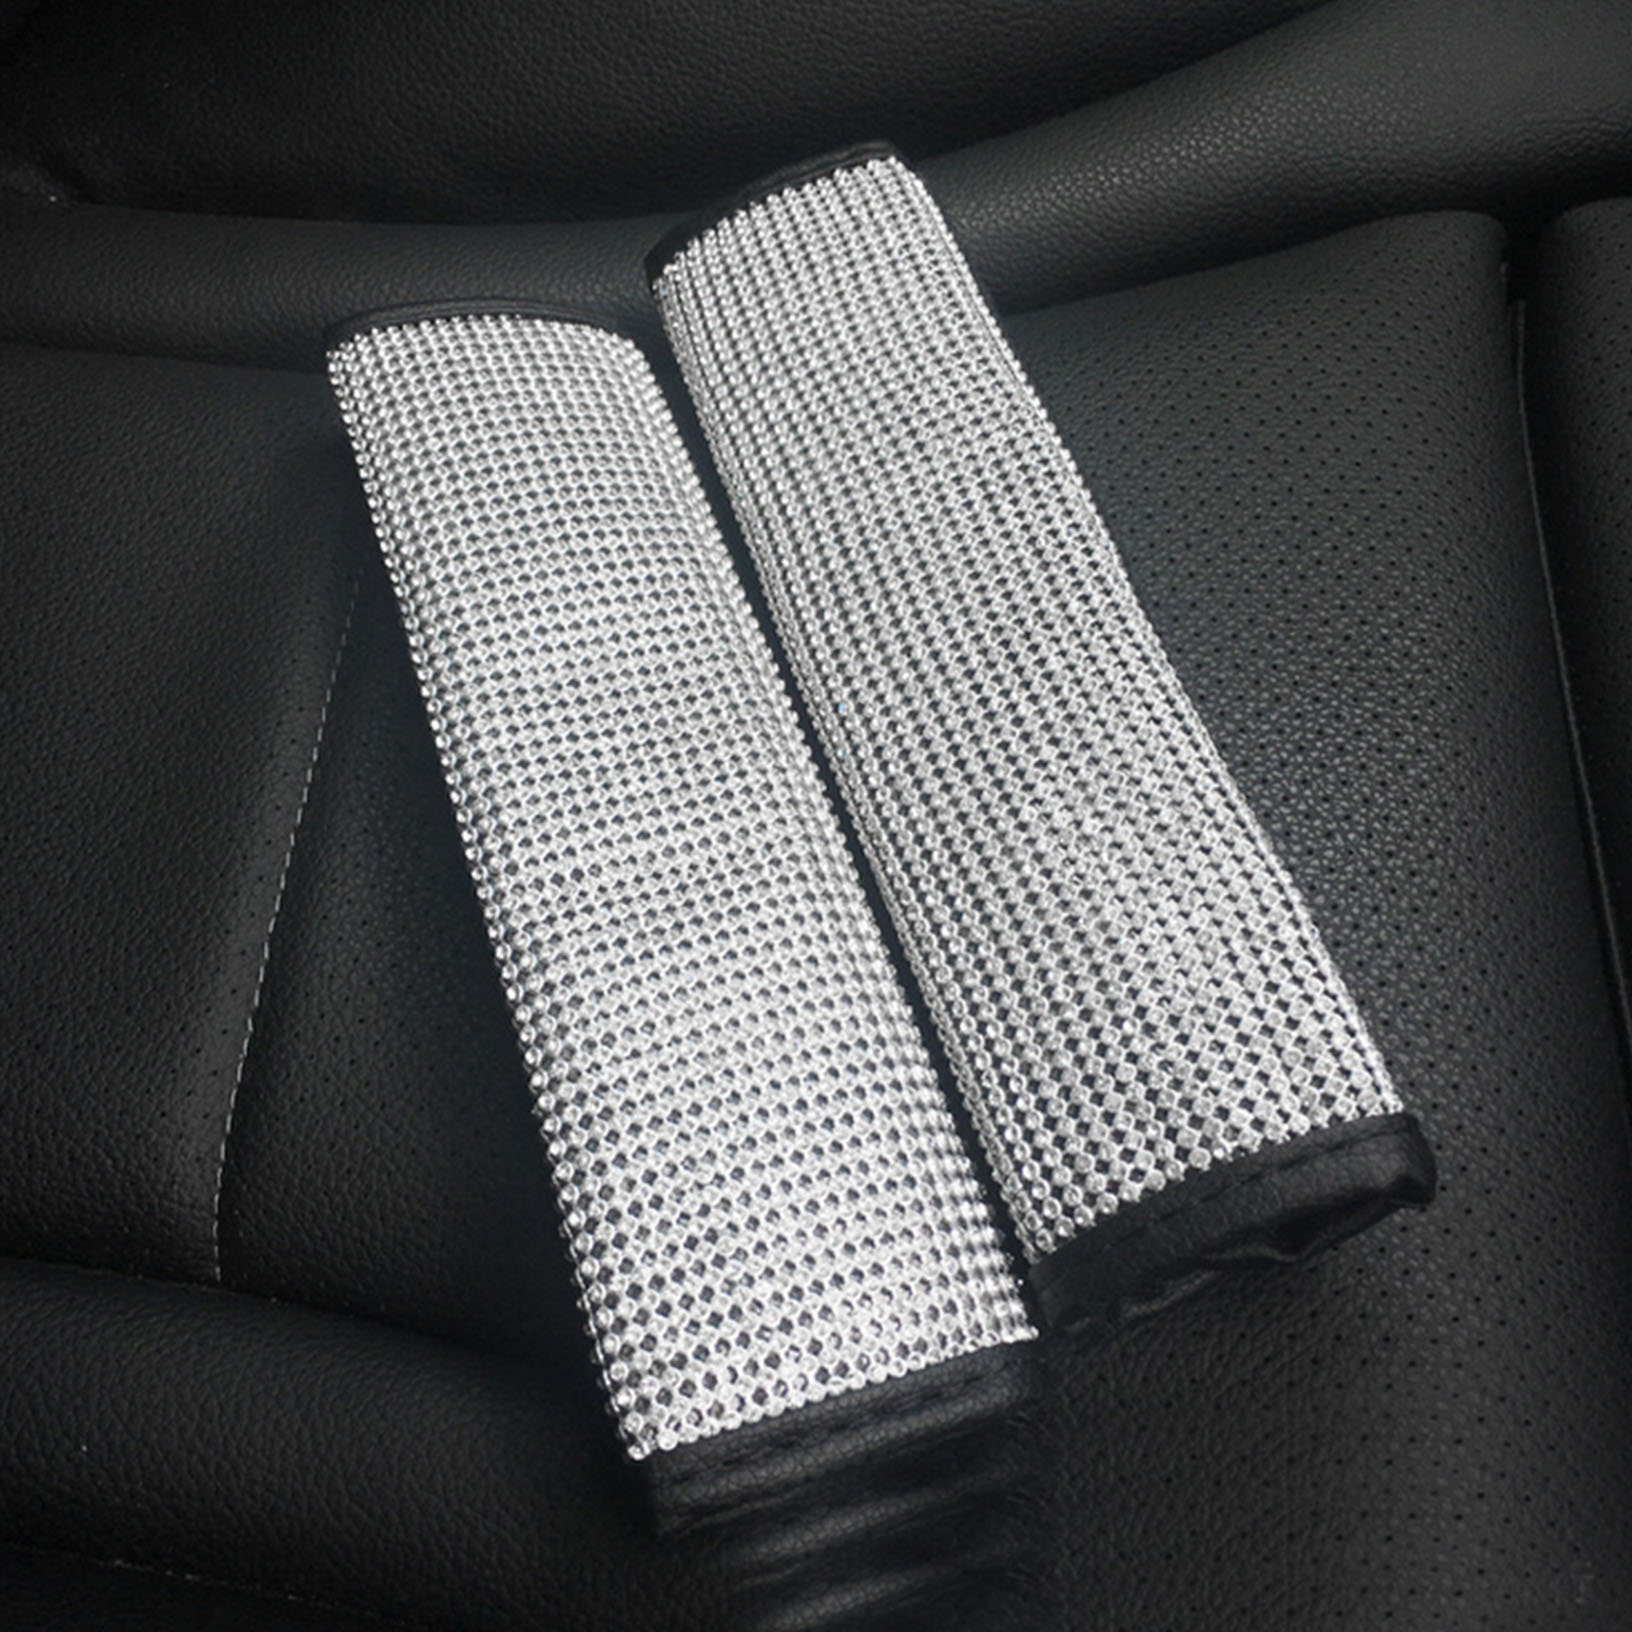 for Honda Insight Car Seat Belt Shoulder Strap Protect Pads Cover No Slip No Rubbing Soft Comfort 2Pcs White